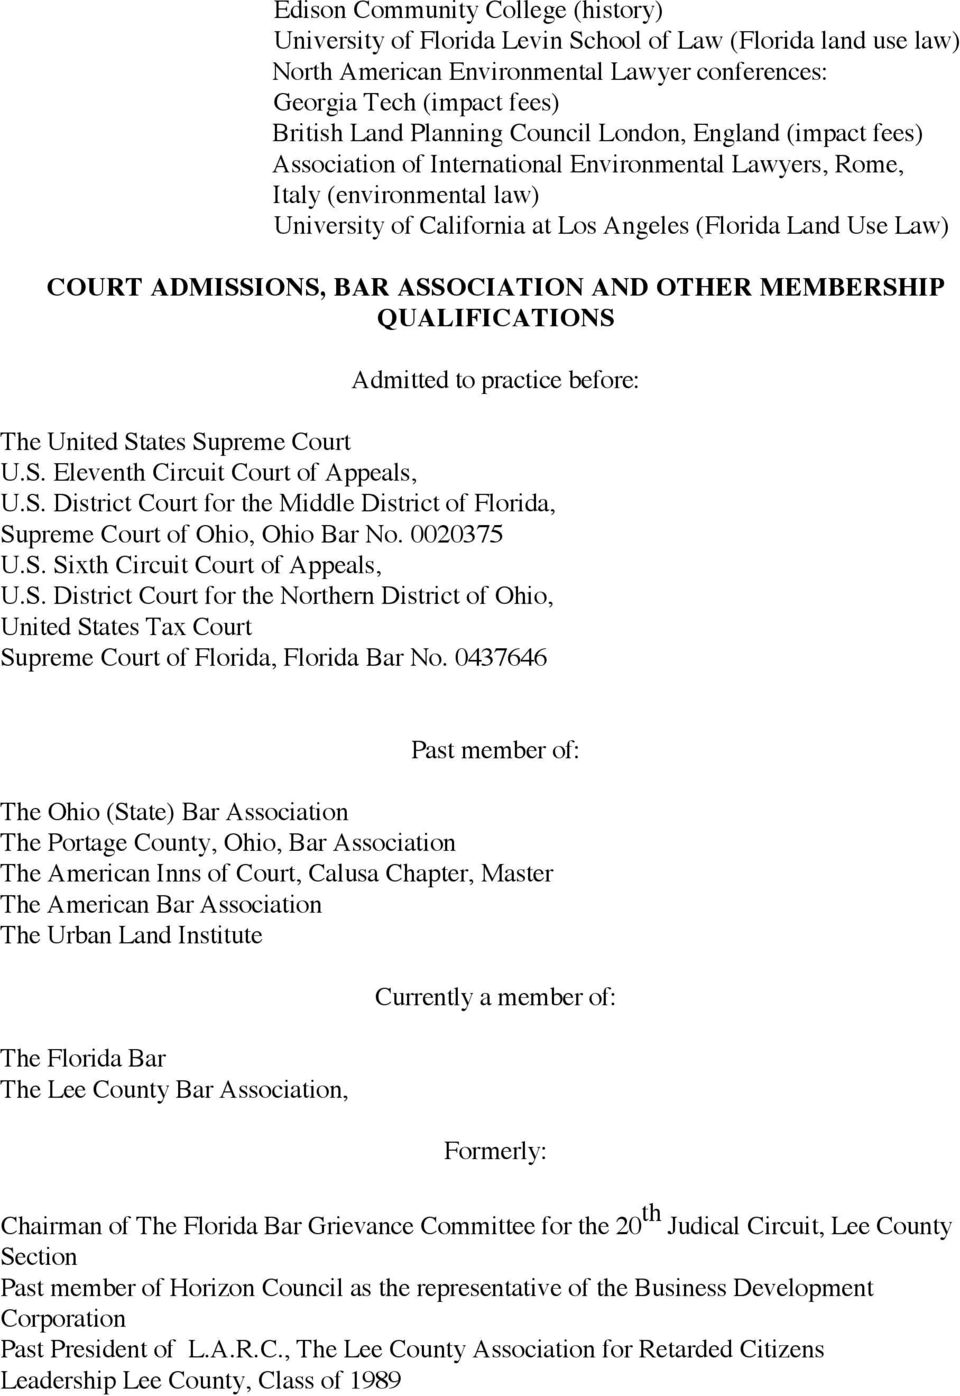 ADMISSIONS, BAR ASSOCIATION AND OTHER MEMBERSHIP QUALIFICATIONS Admitted to practice before: The United States Supreme Court U.S. Eleventh Circuit Court of Appeals, U.S. District Court for the Middle District of Florida, Supreme Court of Ohio, Ohio Bar No.